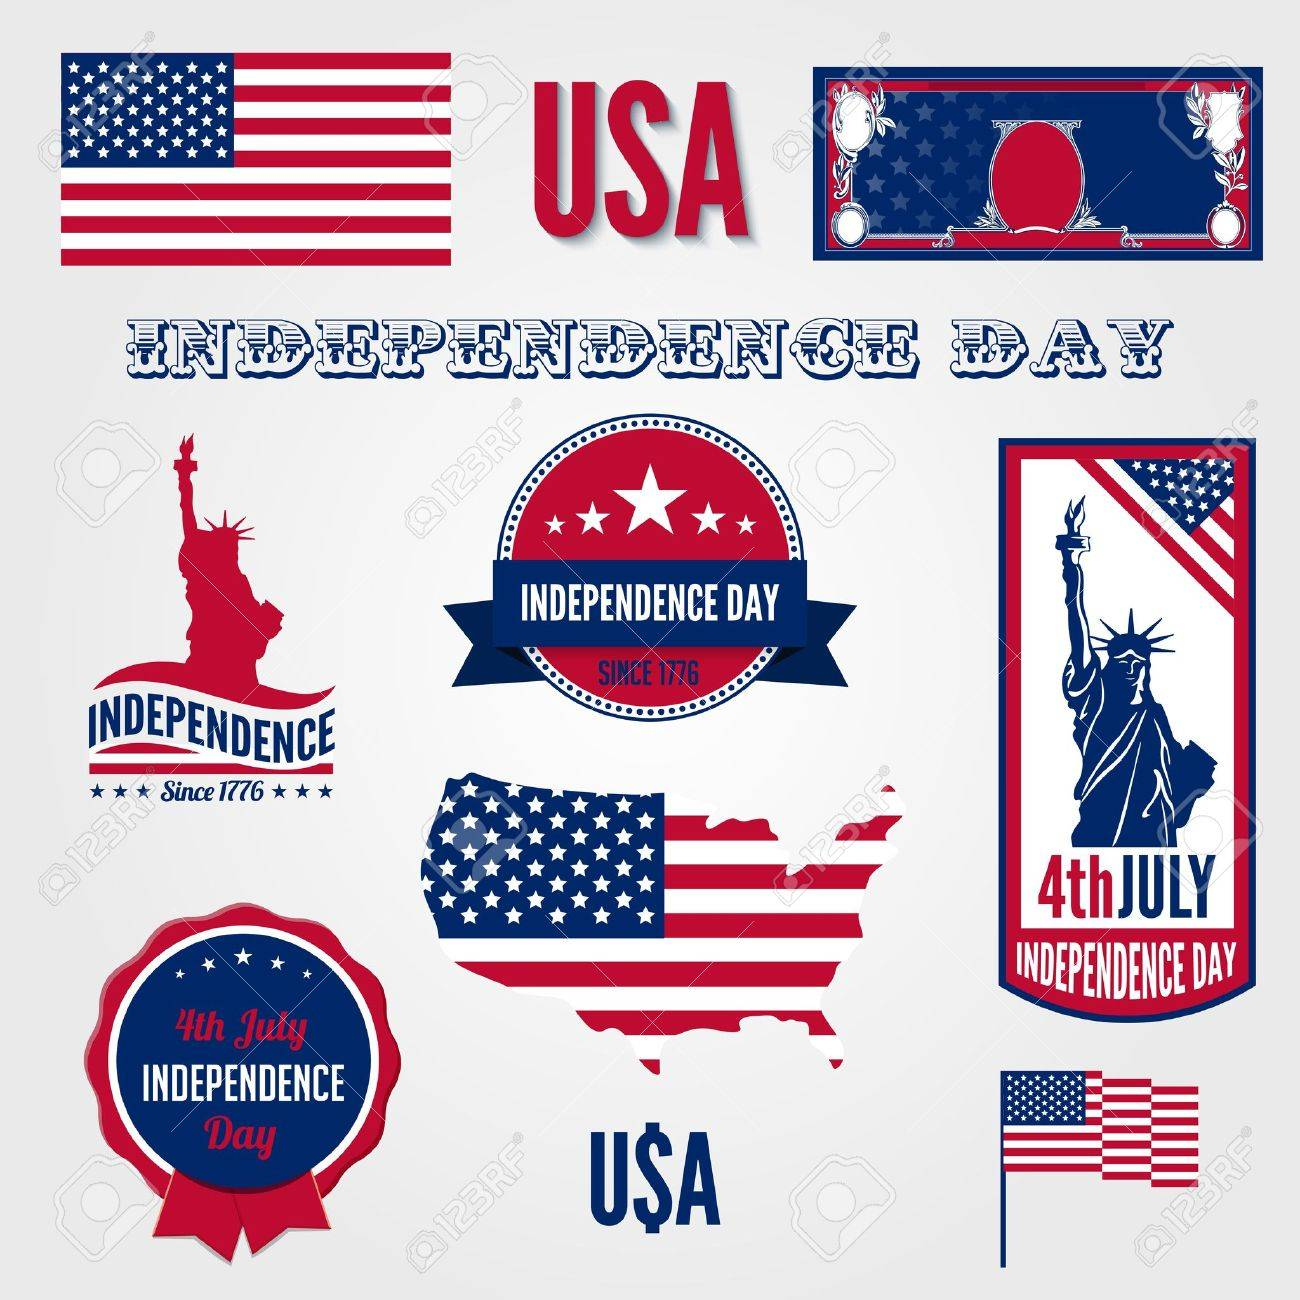 Usa independence day design template elements 4th of july usa independence day design template elements 4th of july celebration symbols american national holiday signs medals biocorpaavc Images